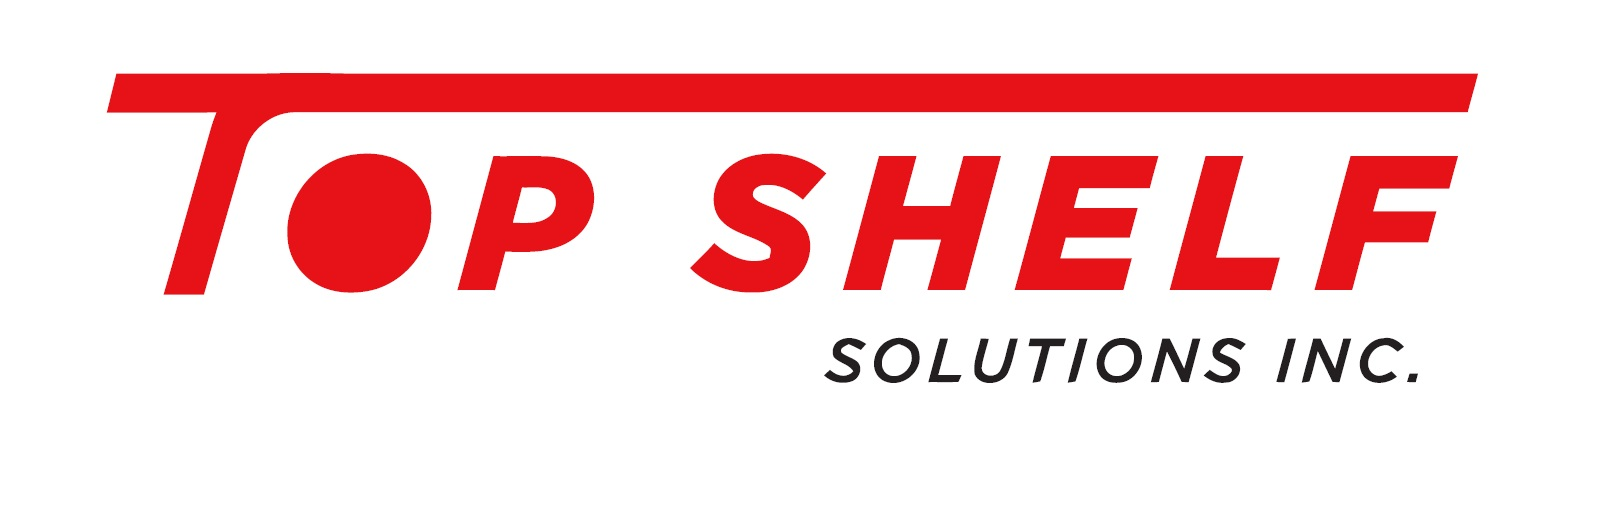 TOP SHELF SOLUTIONS